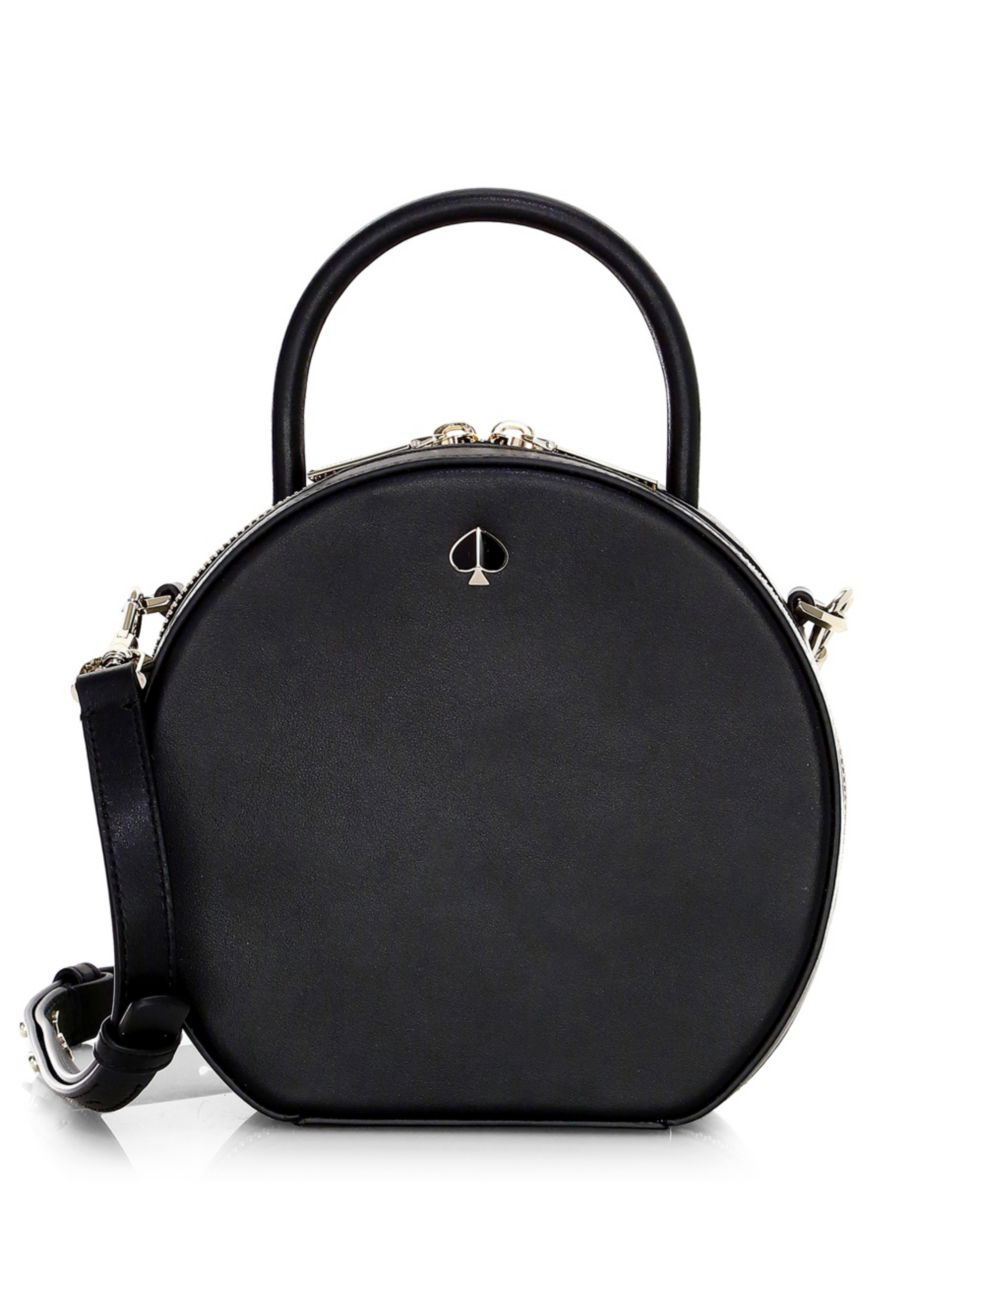 Kate Spade Andi Round Canteen Crossbody Bag | Best Round Bags for Spring 2019 | CoffeeAndHandbags.com